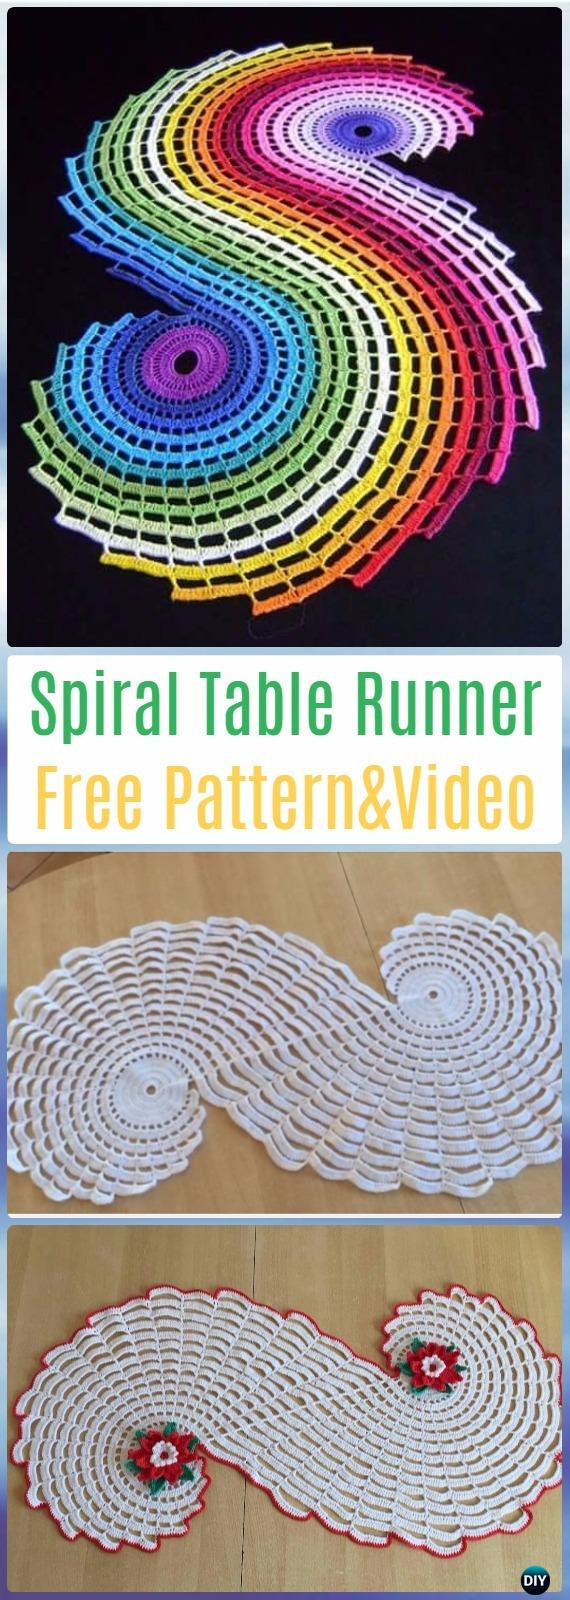 Crochet Table Runner Patterns Luxury Crochet Table Runner Free Patterns & Tutorials Of Amazing 45 Pics Crochet Table Runner Patterns